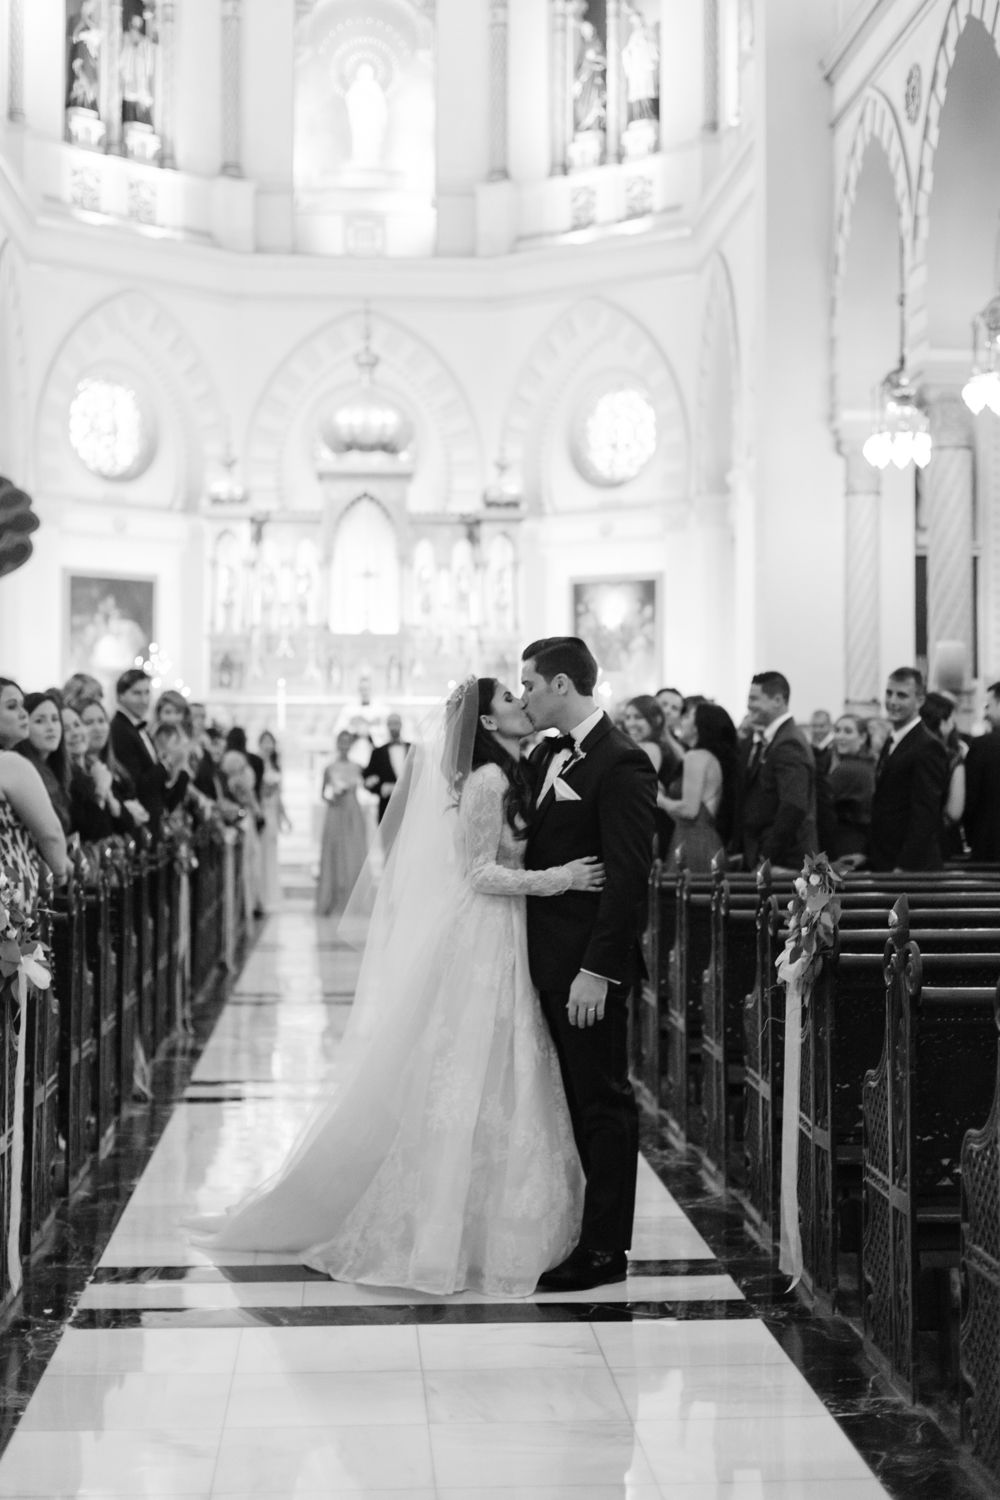 <p>Bride and groom kissing during ceremony</p><br><br>